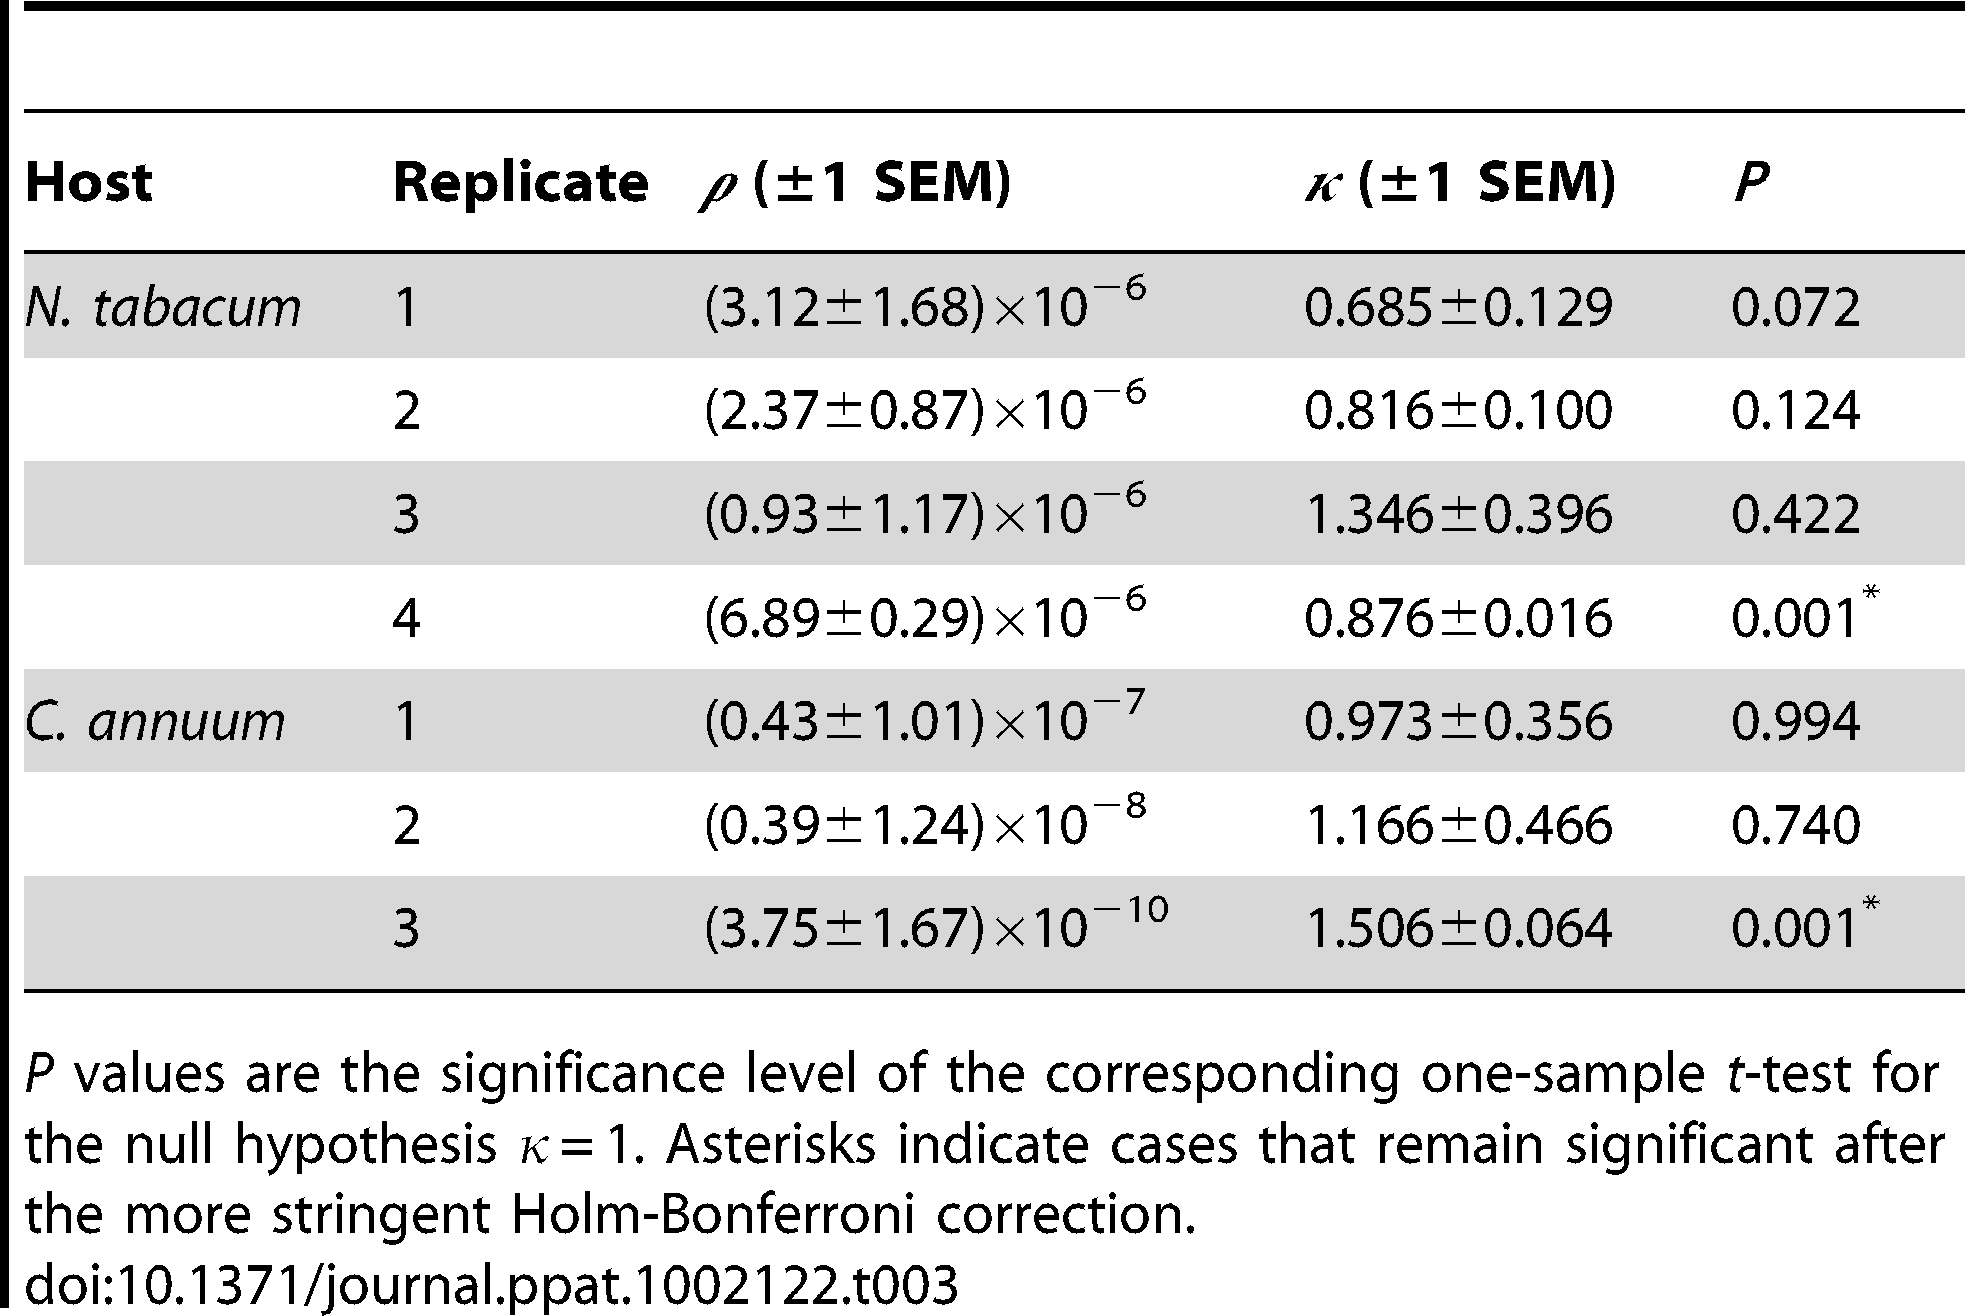 Parameters estimated for the fitting of the dose response general infection model to each dataset.